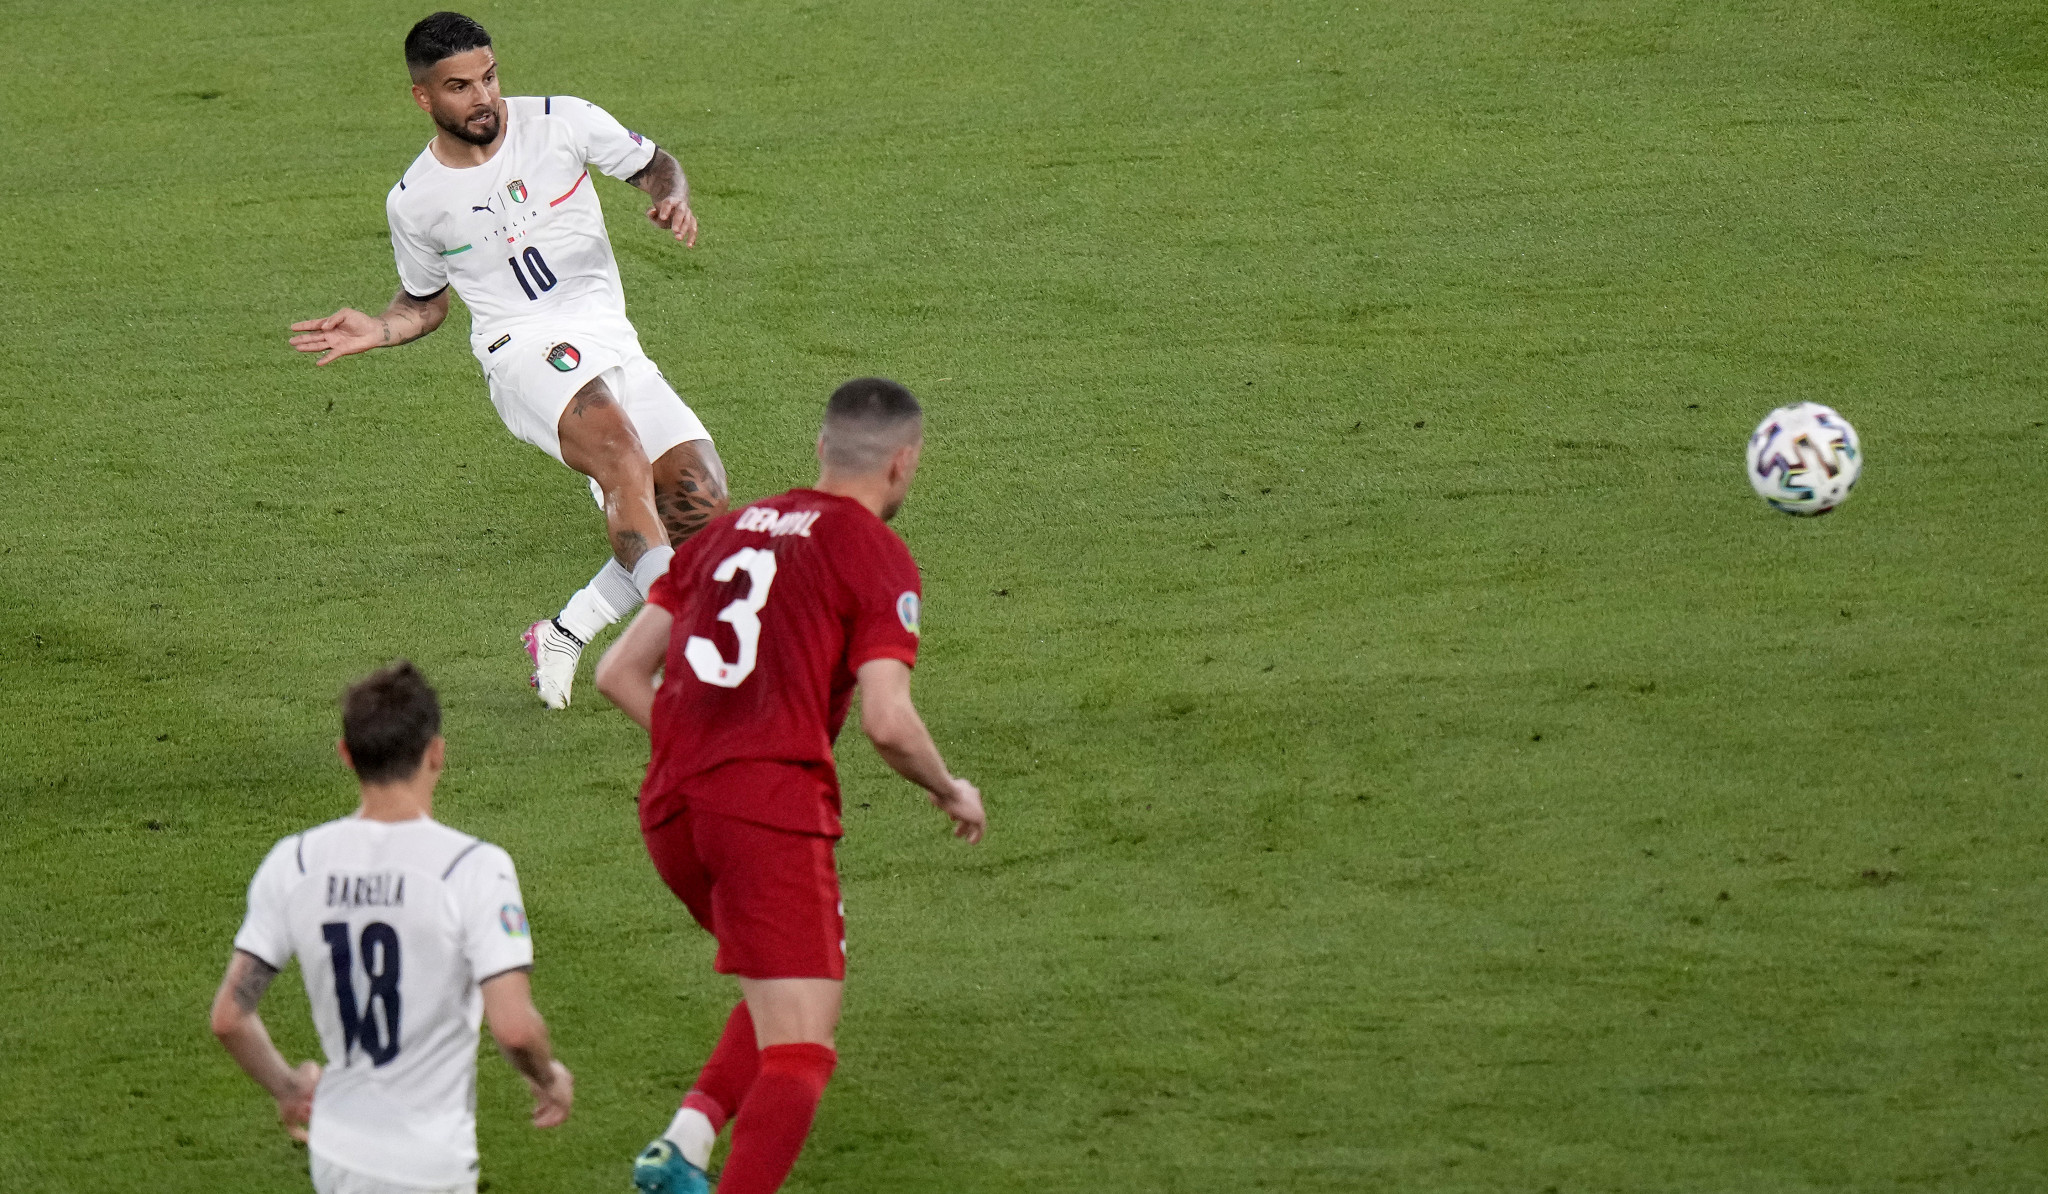 Italy open delayed UEFA Euro 2020 tournament with emphatic win